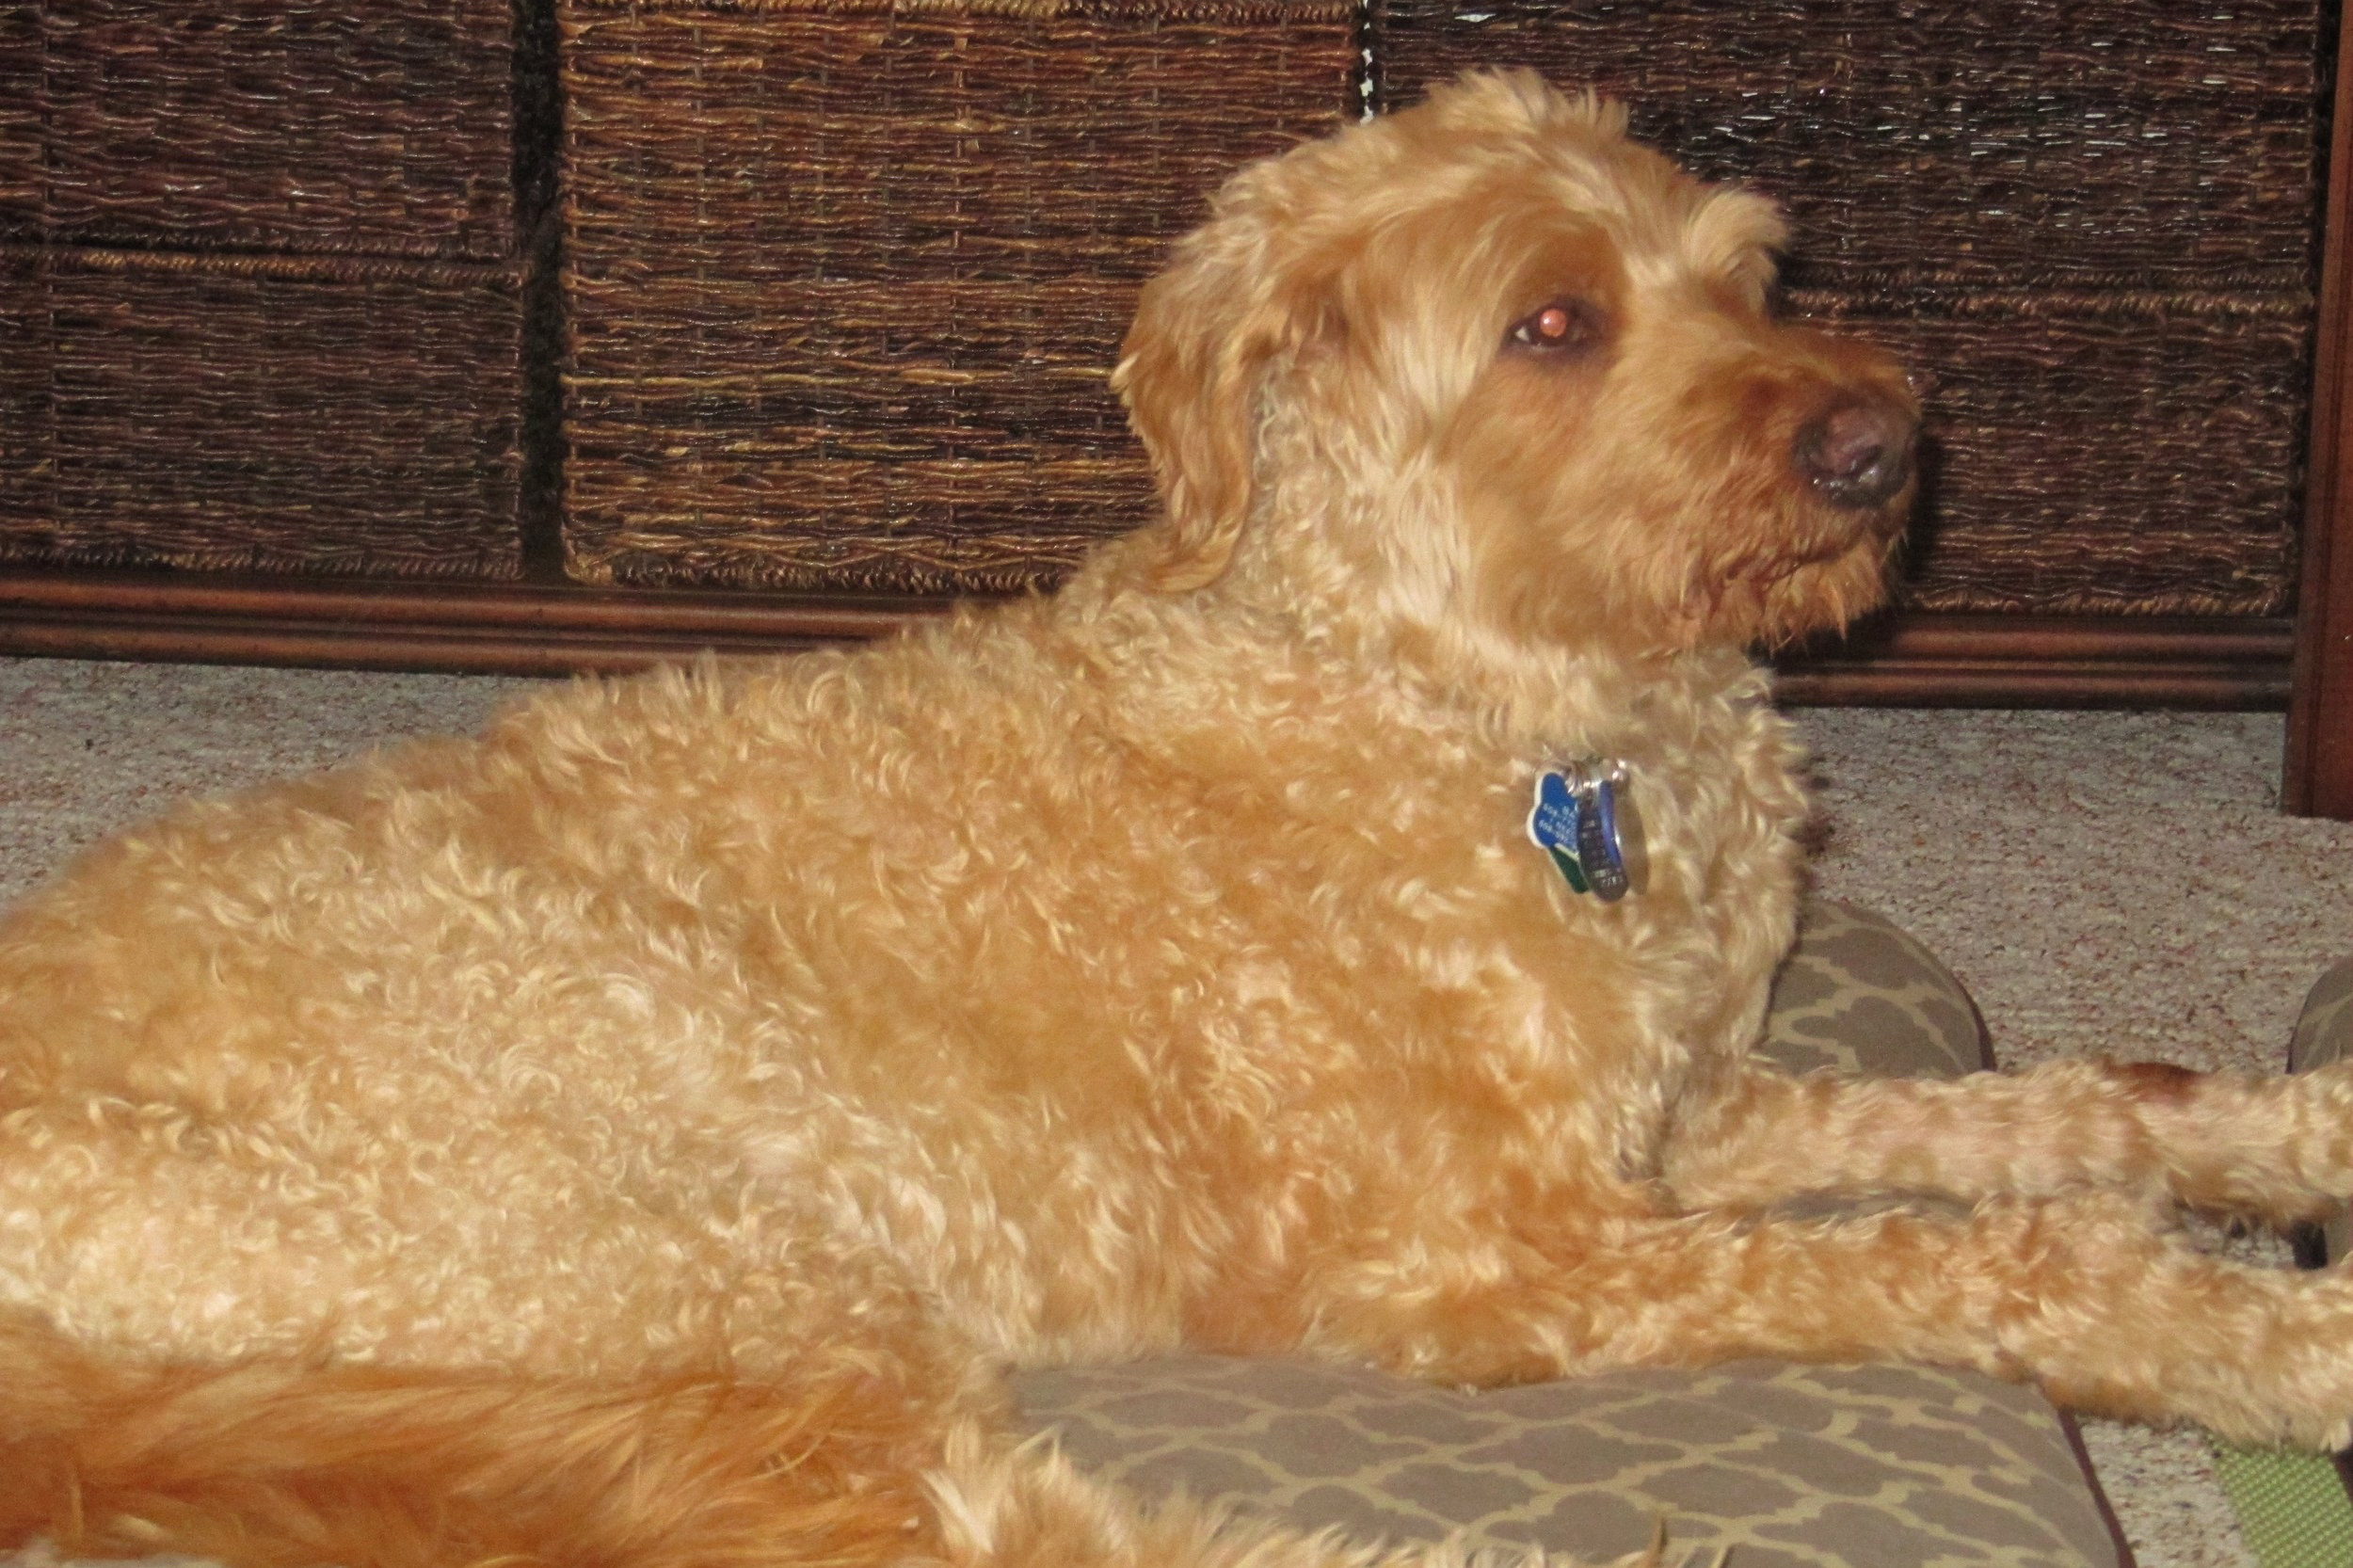 """We lost Banjo, a 14.8 year old bonded-goldendoodle, on December 3, 2018. When we returned home without Banjo from the vet clinic, the house was, of course, way too quiet. His bonded-buddy, Jack, was very subdued and stuck close to us for several days. It was amazing to us that Jack seemed to intuitively understand that Banjo was gone and wasn't coming back. We had been worried about how Jack would handle Banjo's absence; but, he was busy figuring out his new relationship with us as being our only dog.  We only had the privilege of having Banjo with us for 18 months before we lost him. He was a mellow, sweet dog who enjoyed eating, getting petted, sleeping on one of his dog beds (in the living room or in the bedroom) and being with his pack which was comprised of Jack and us. We are retired so we were able to spend more time with both dogs than a working couple could have. We are grateful for this since his time with us was so short.  Banjo's one vice was that he would tear up things after we left the house, He never tore up anything of value; it was always some small thing with our scent on it. Banjo made it clear that he liked having his pack intact...and at home with him. We tried several approaches to stopping this behavior; but to no effect. So, we began to pack or put up things that we knew would attract a """"Banjo attack"""" and this worked the best of all of the approaches that we tried.  Banjo loved people and always expected everyone to love him back. He assumed that everyone wanted to pet him and would lean on people's legs in invitation if they didn't make the move to pet him first. Also, he loved our little grandson and was very patient with the clumsy exploration that babies make towards dogs. We never worried about a negative reaction from Banjo. We so appreciated this about him.  Banjo was a special dog whom we miss like crazy. We love you, Banjo!"""